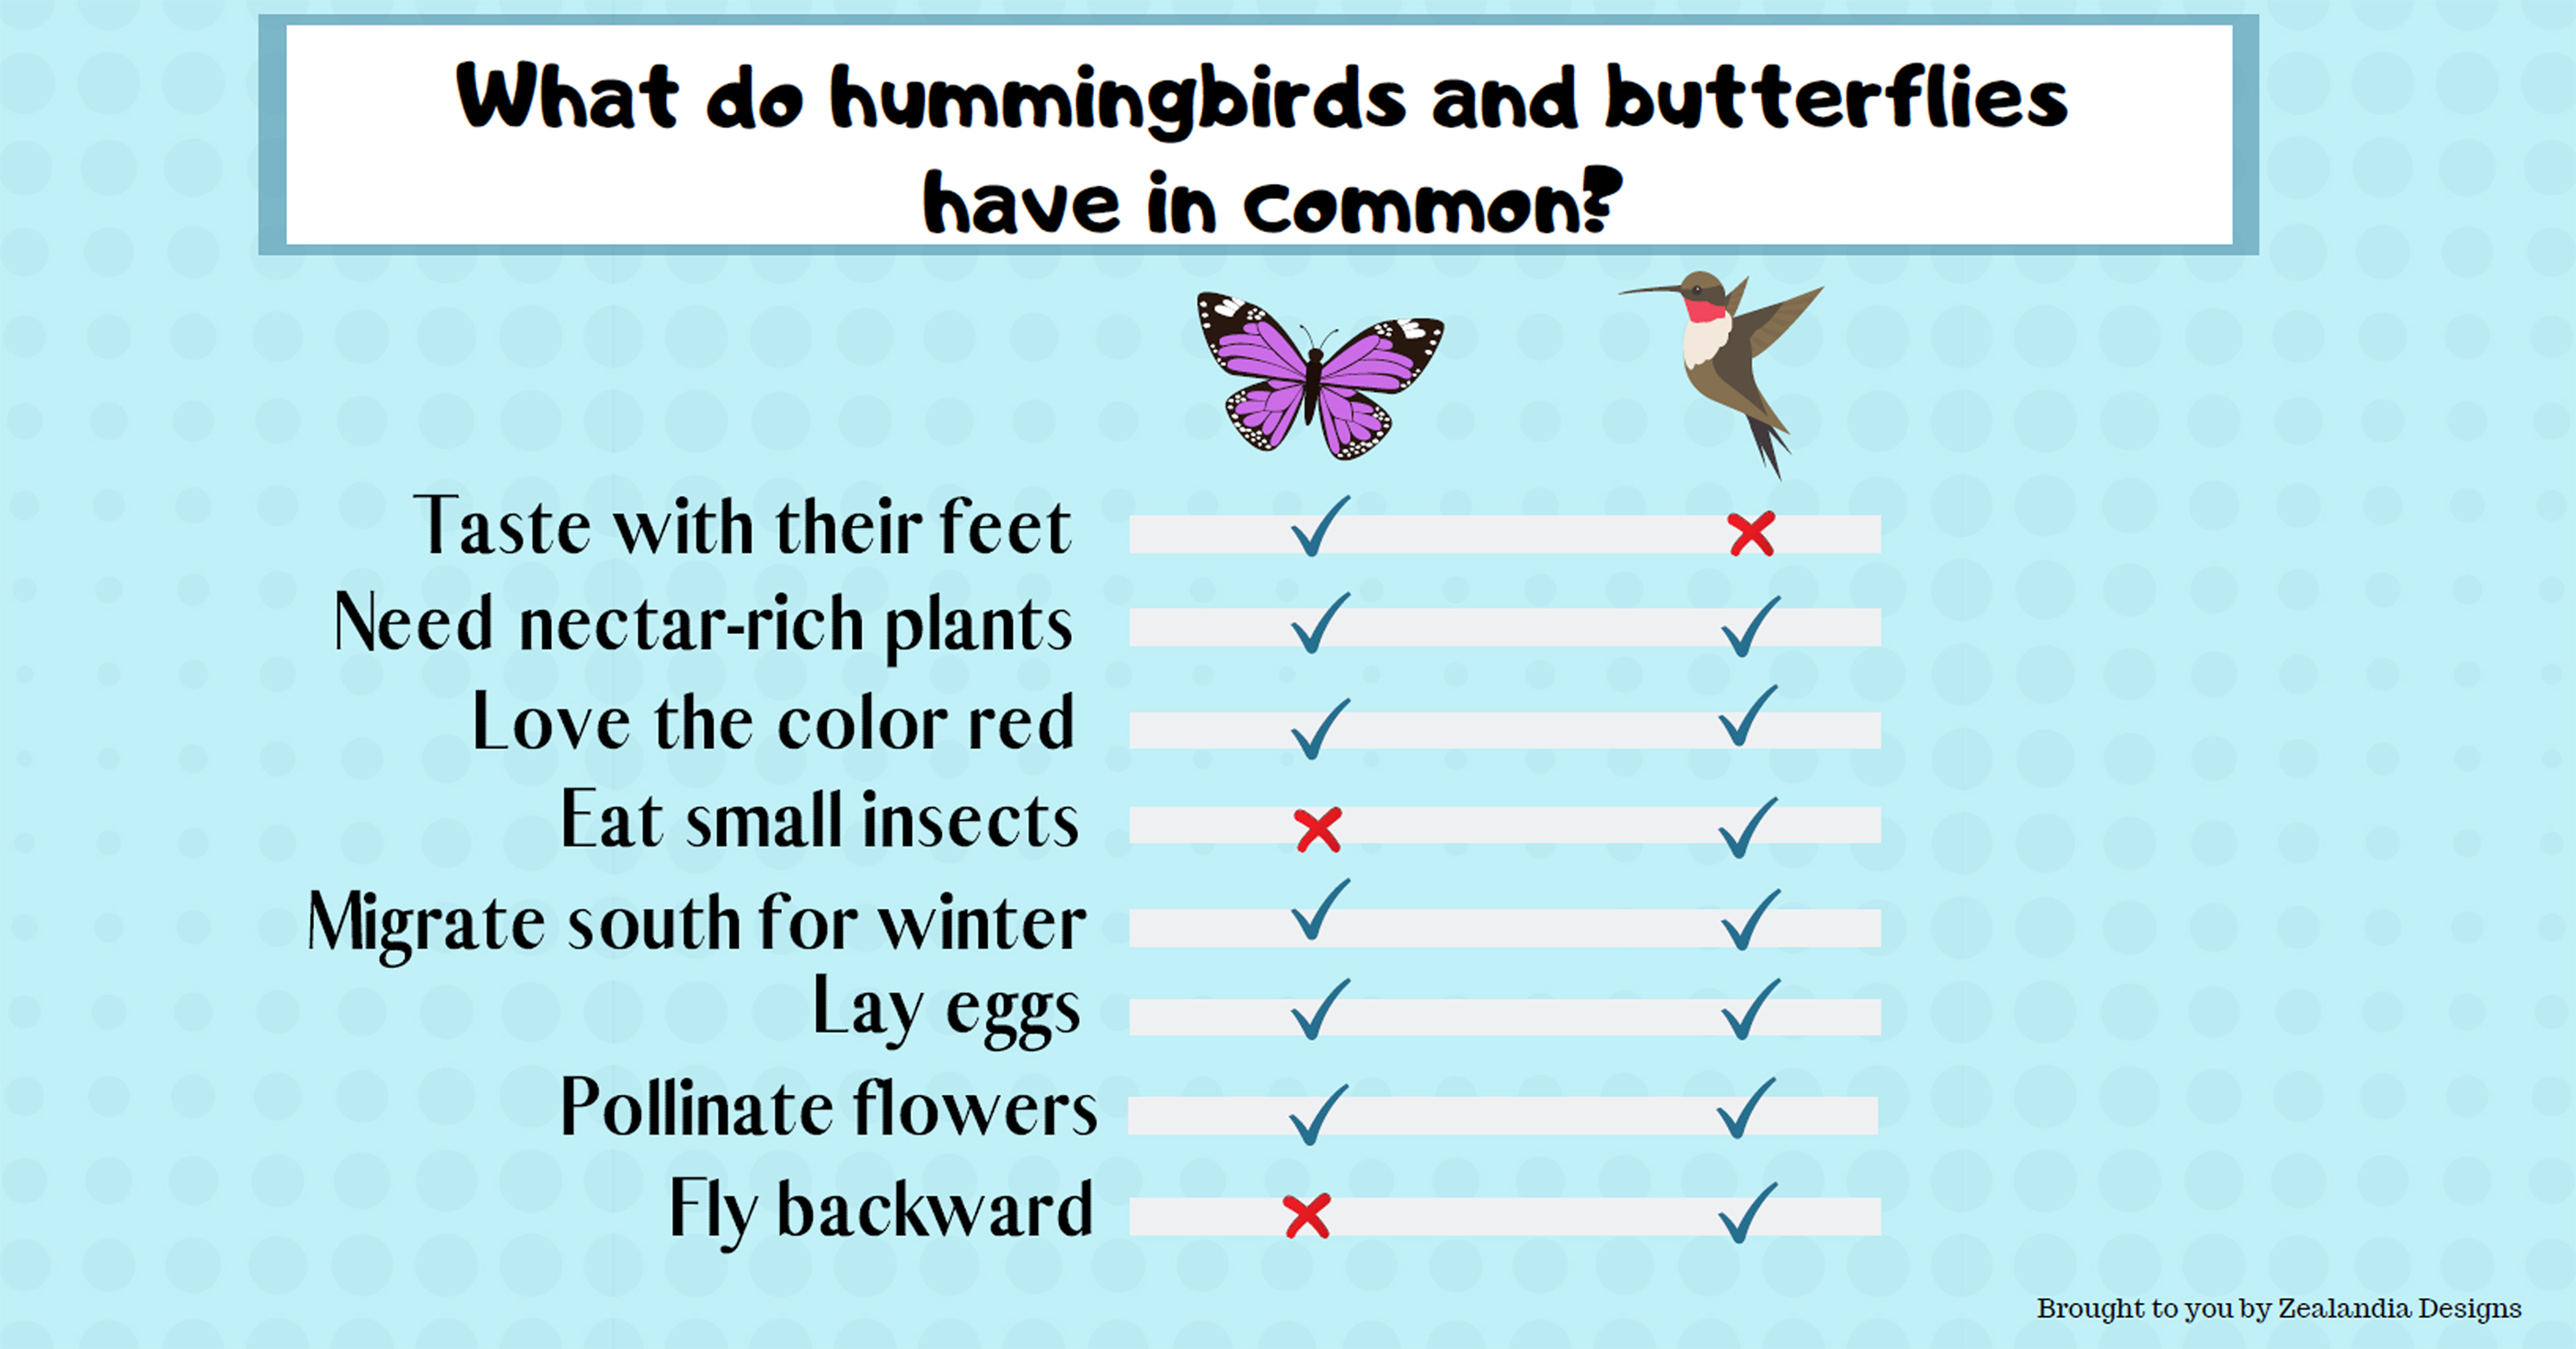 Hummingbirds and Butterflies have in common